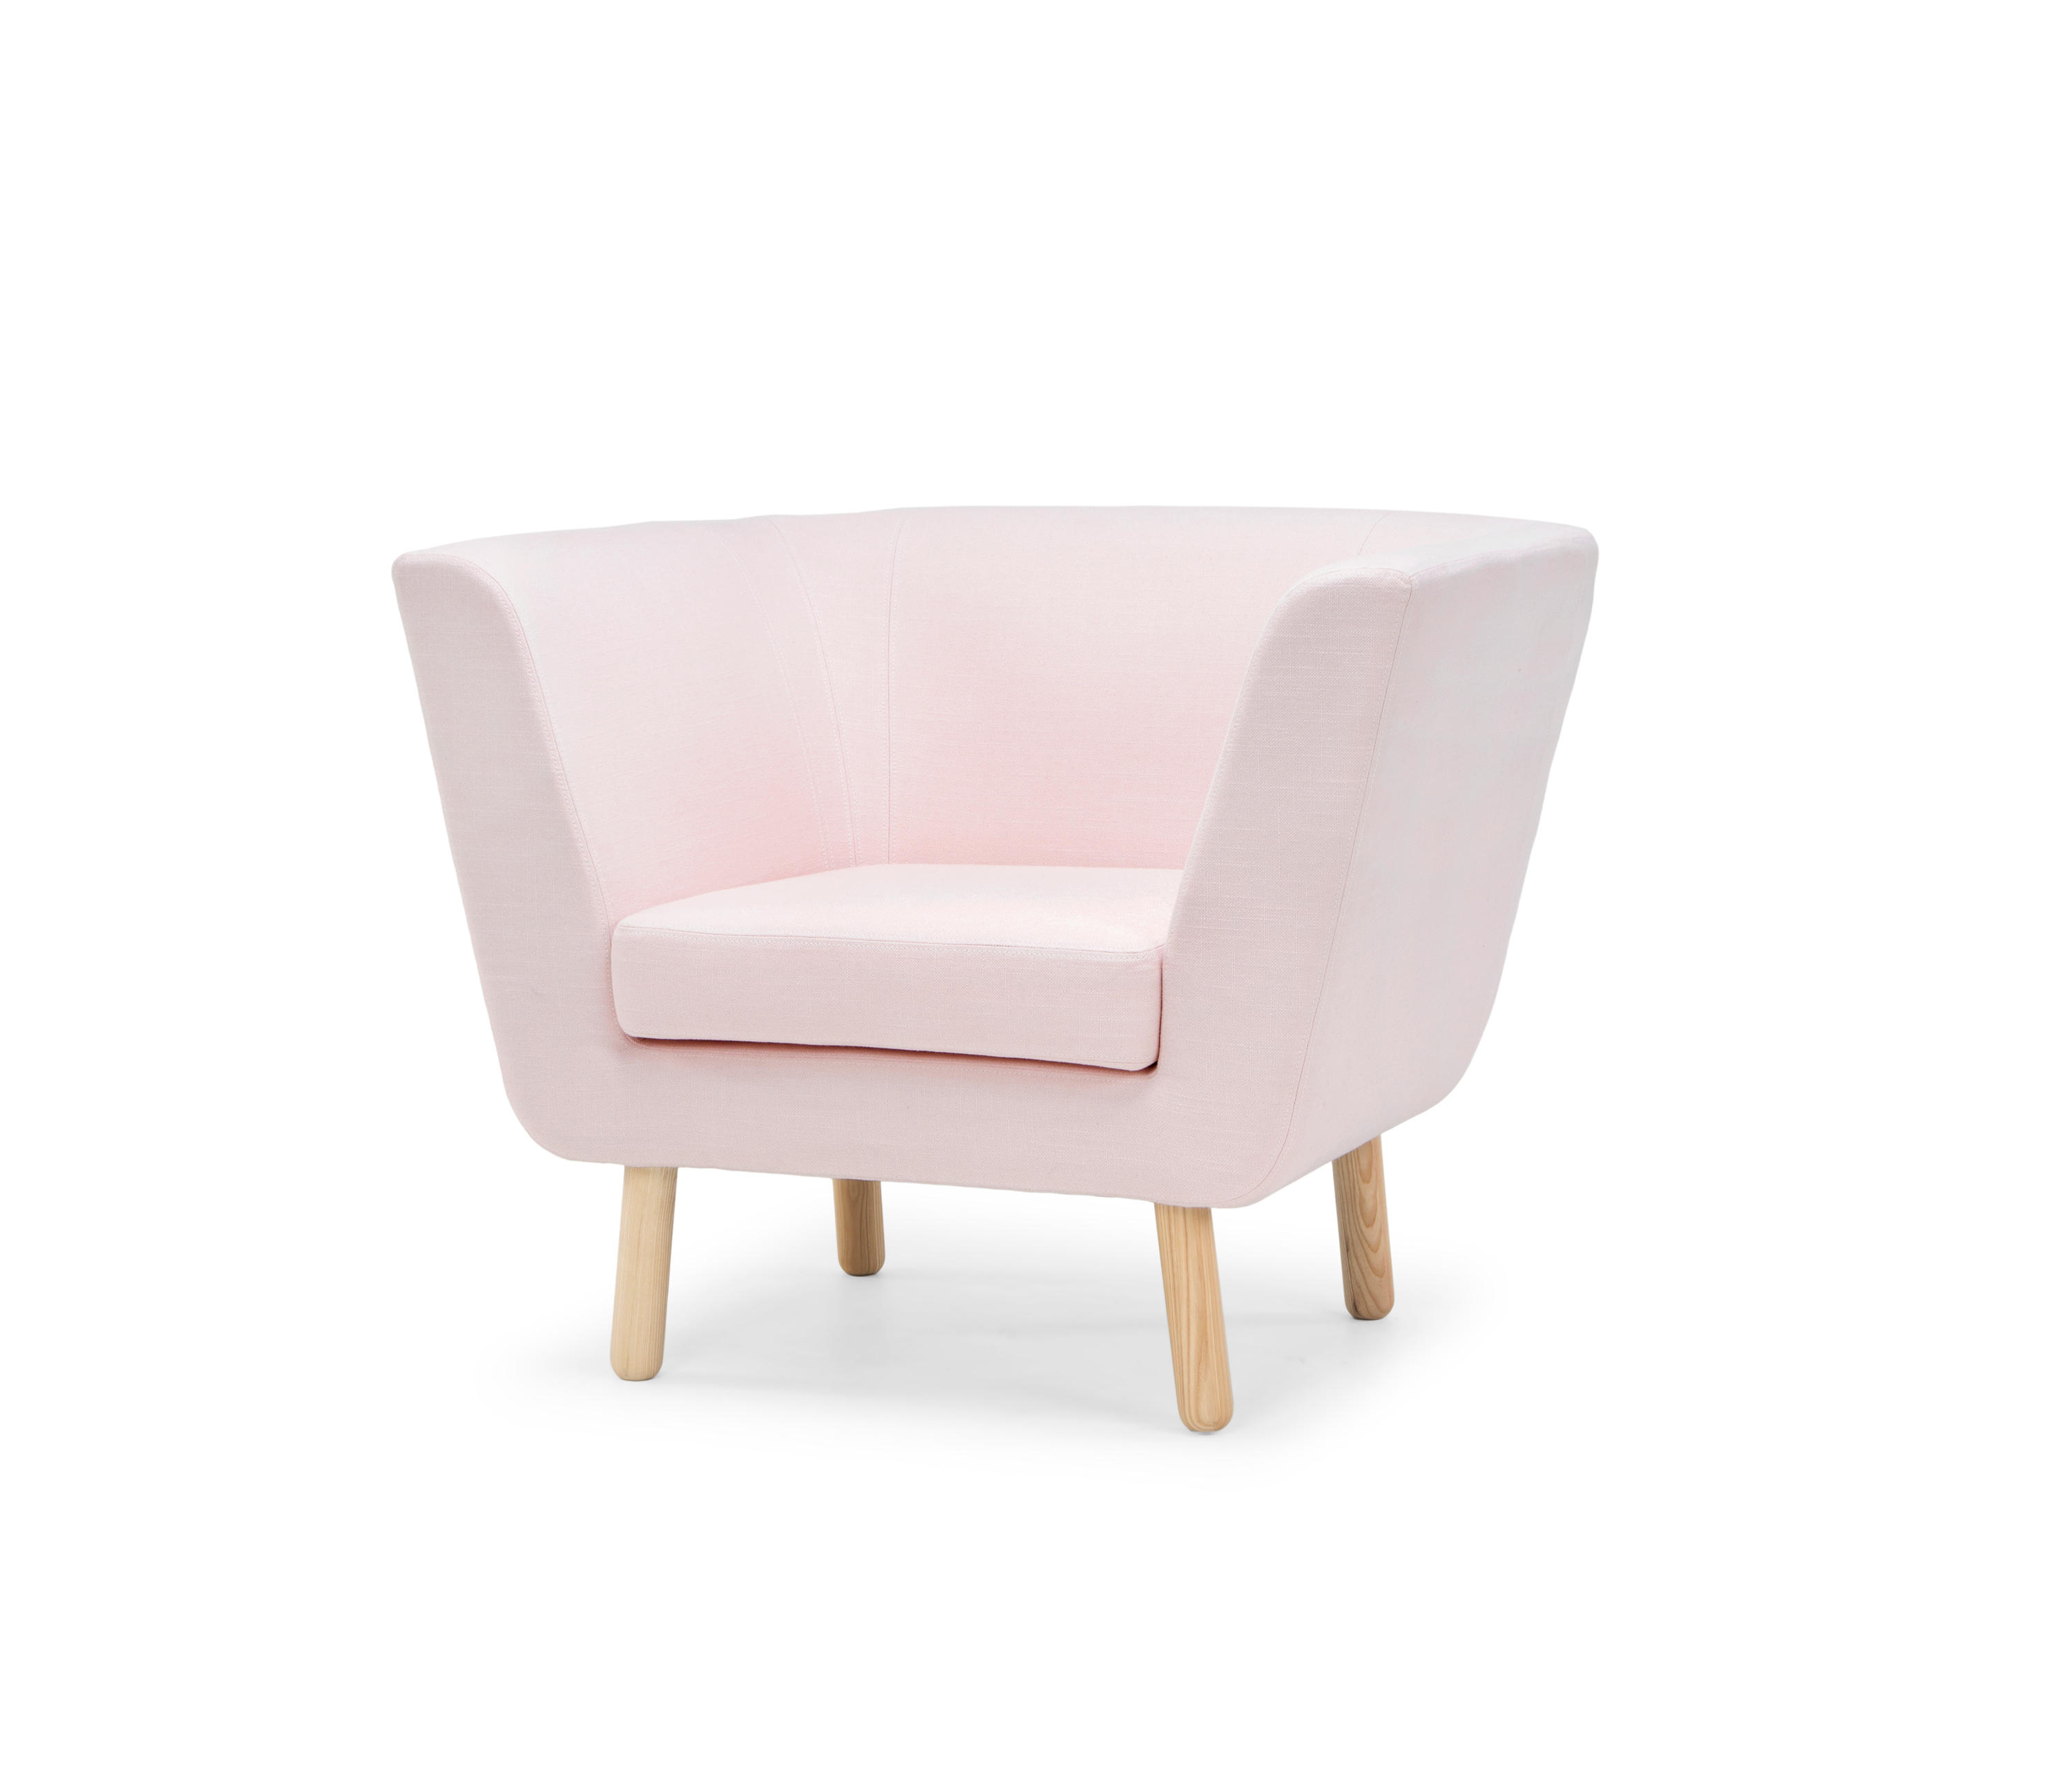 NEST EASY CHAIR Lounge chairs from Design House Stockholm